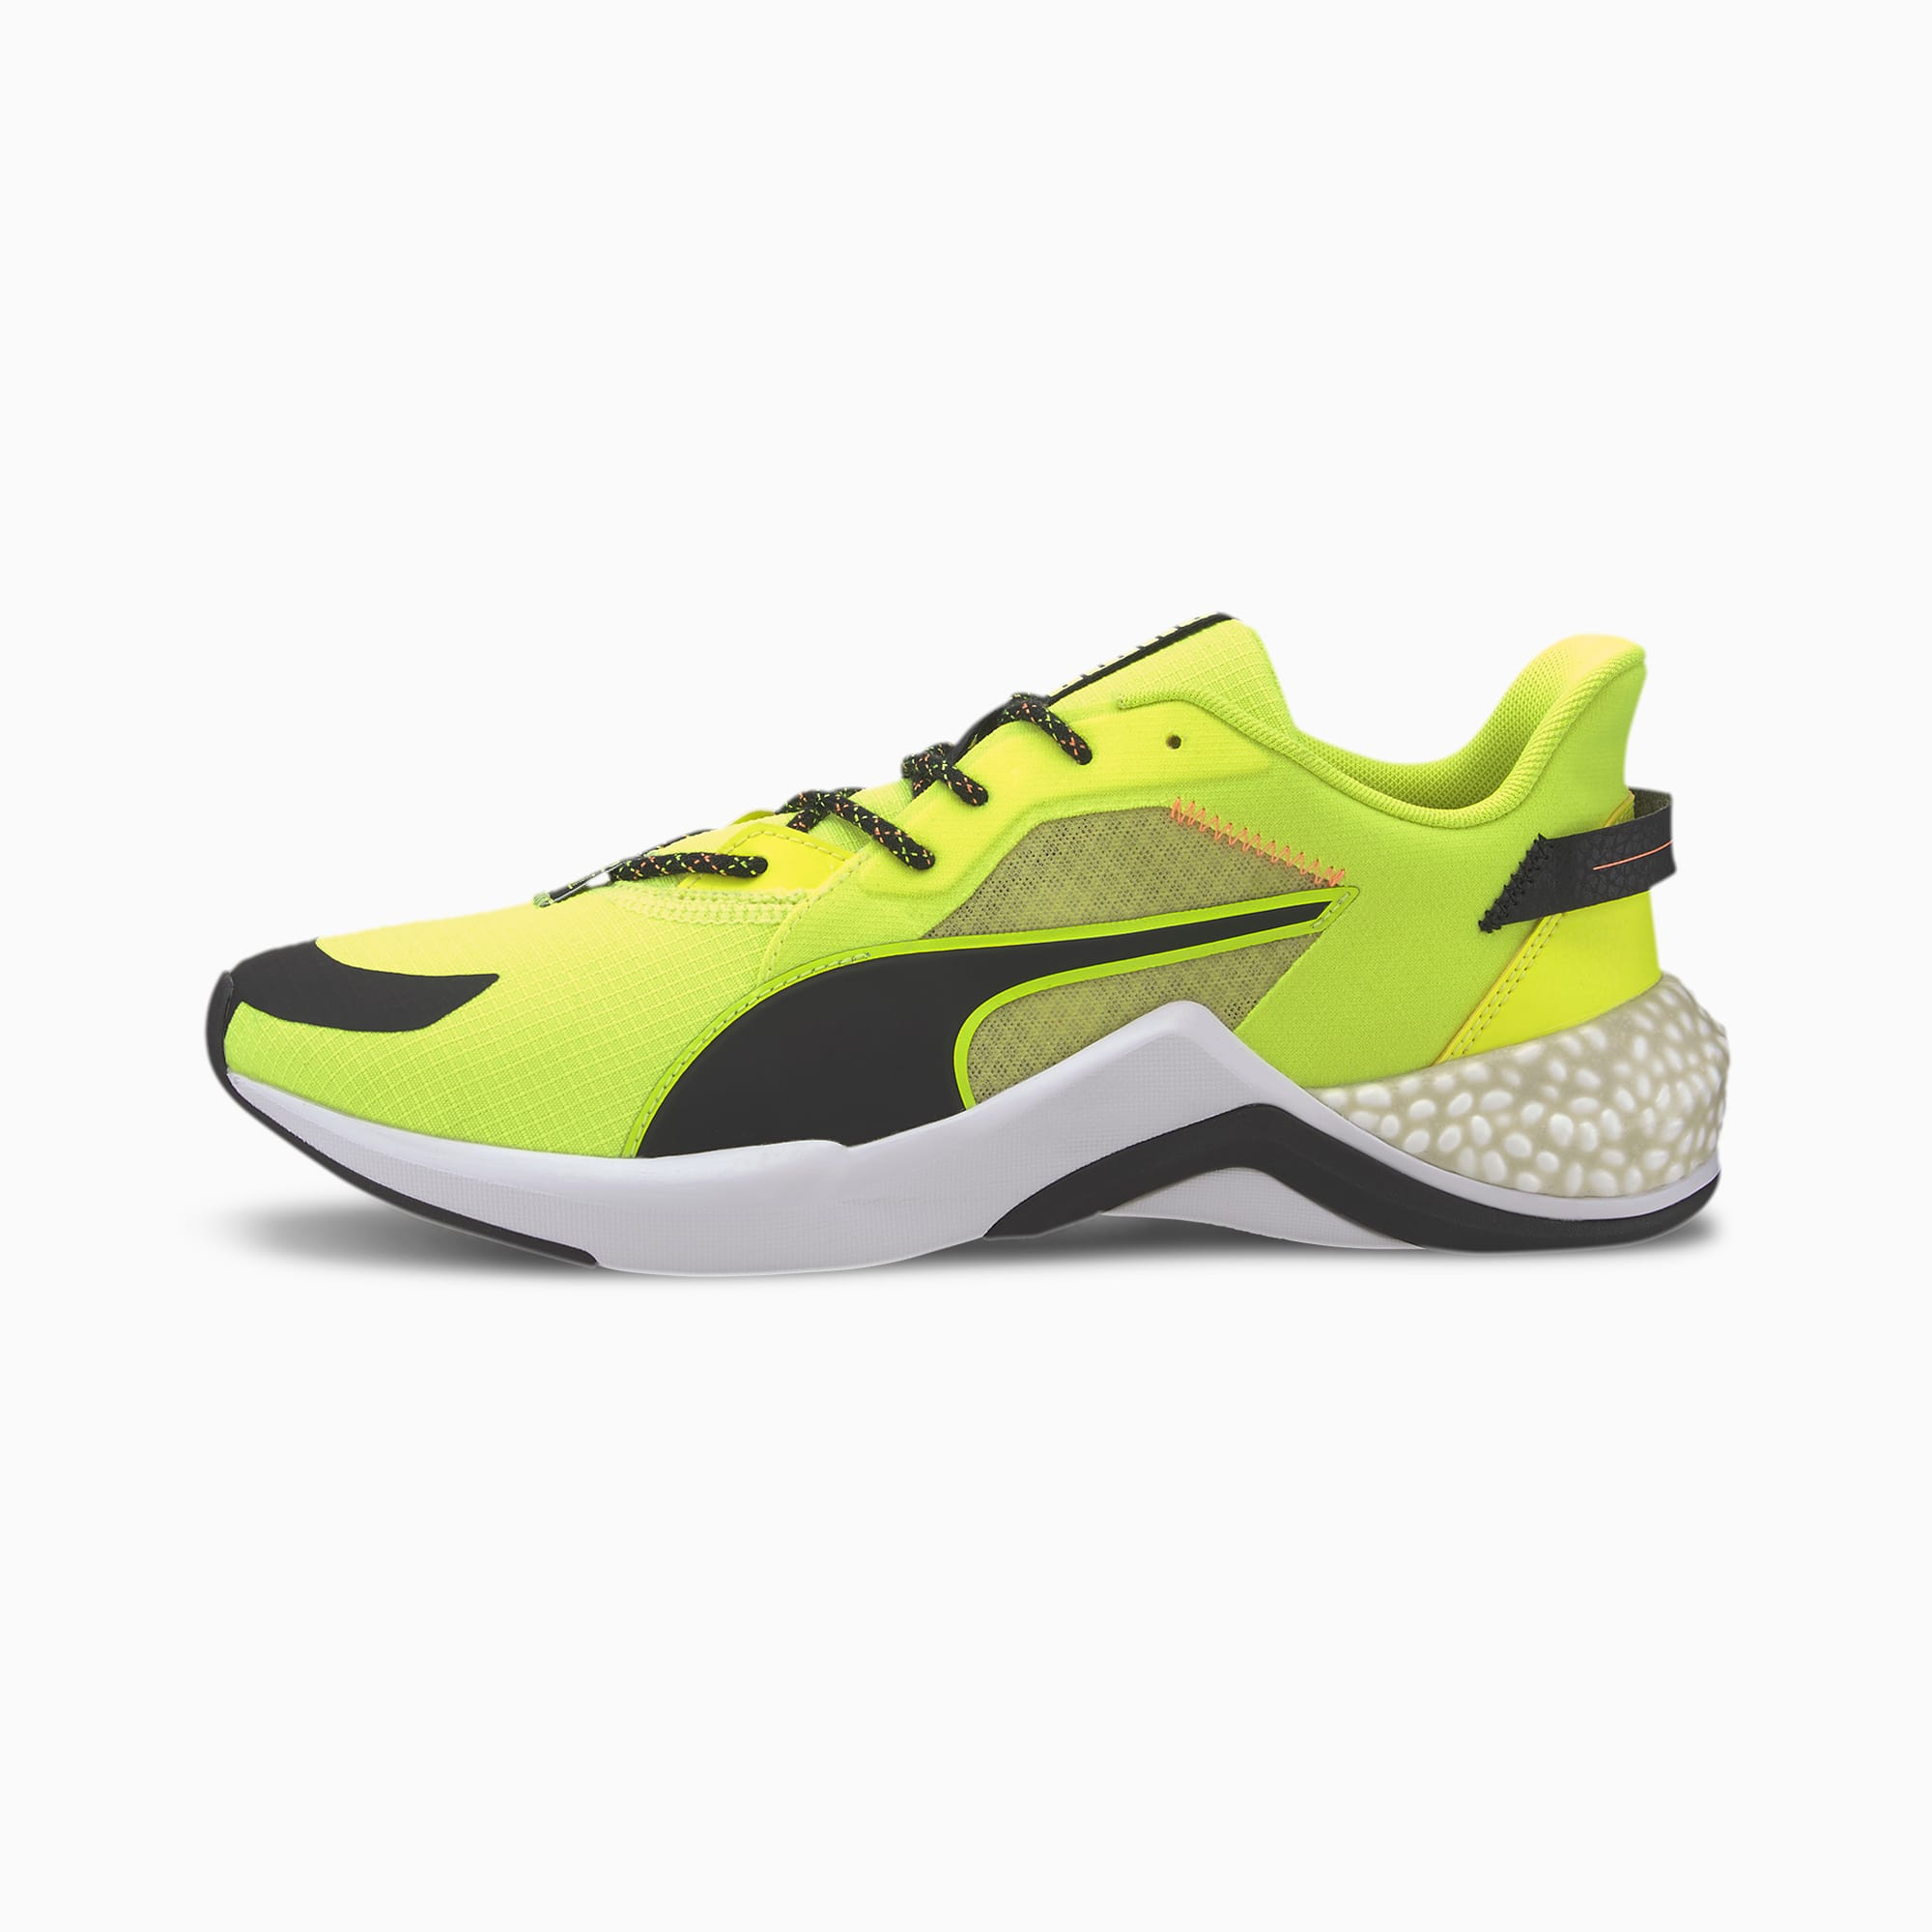 PUMA x FIRST MILE HYBRID NX Ozone Men's Running Shoes